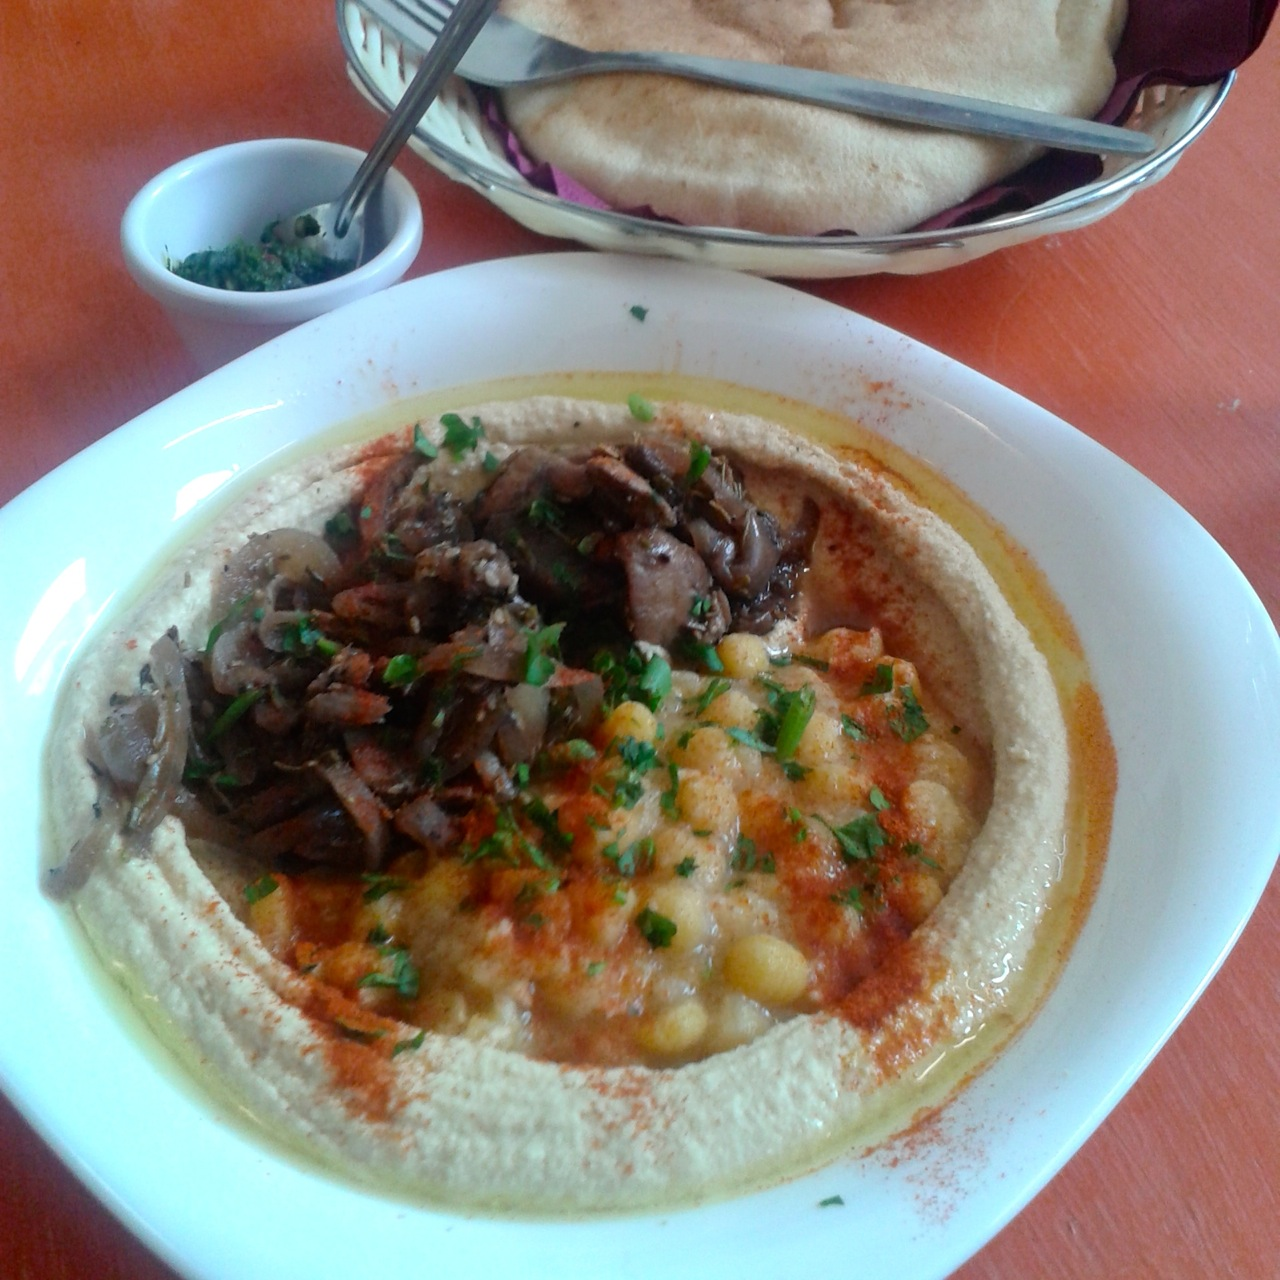 http://fatgayvegan.com/wp-content/uploads/2015/09/hummus-bowl-with-mushrooms.jpg